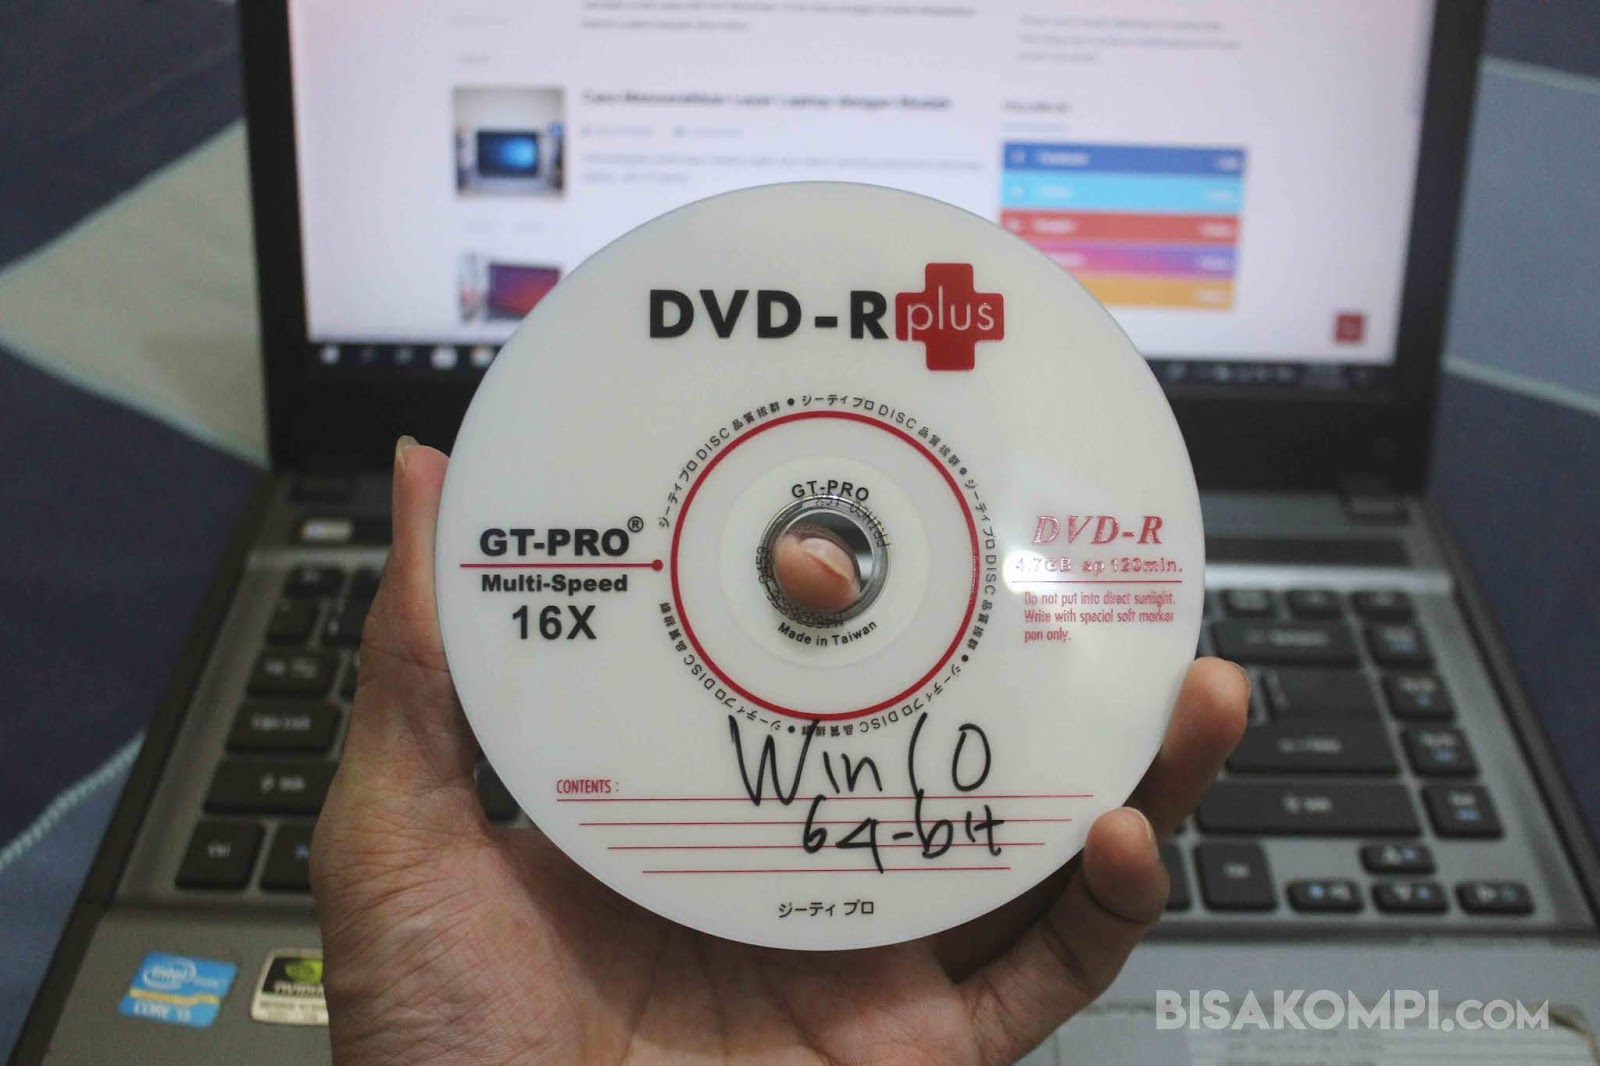 Cara Burning Windows 10 ke DVD